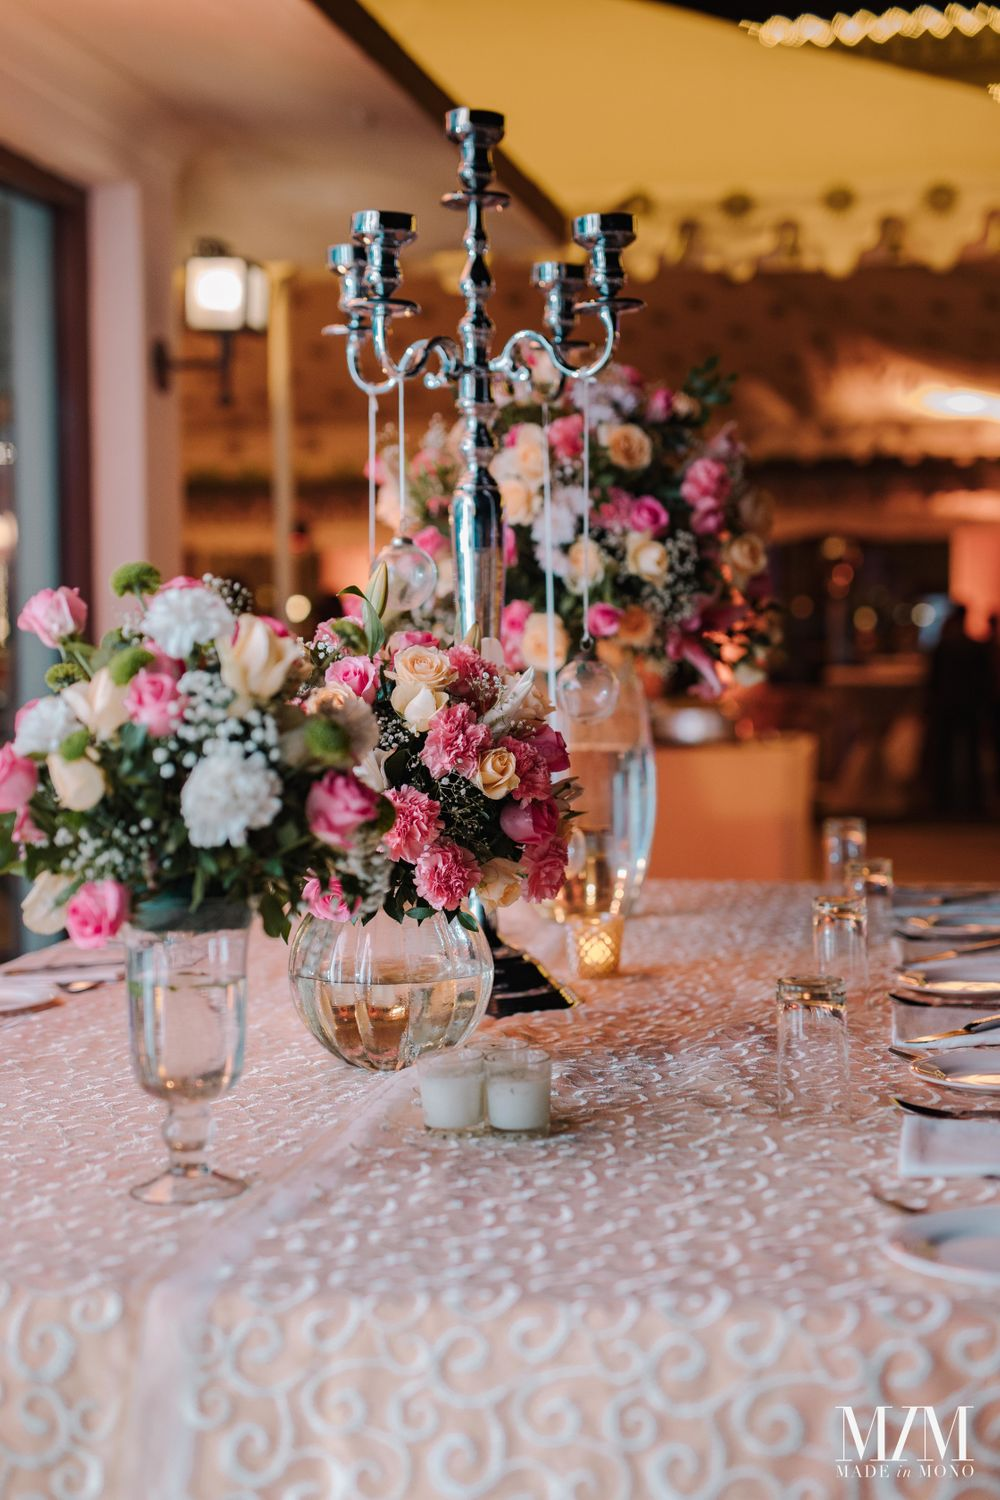 Photo of elegant floral centrepiece idea for wedding or cocktail